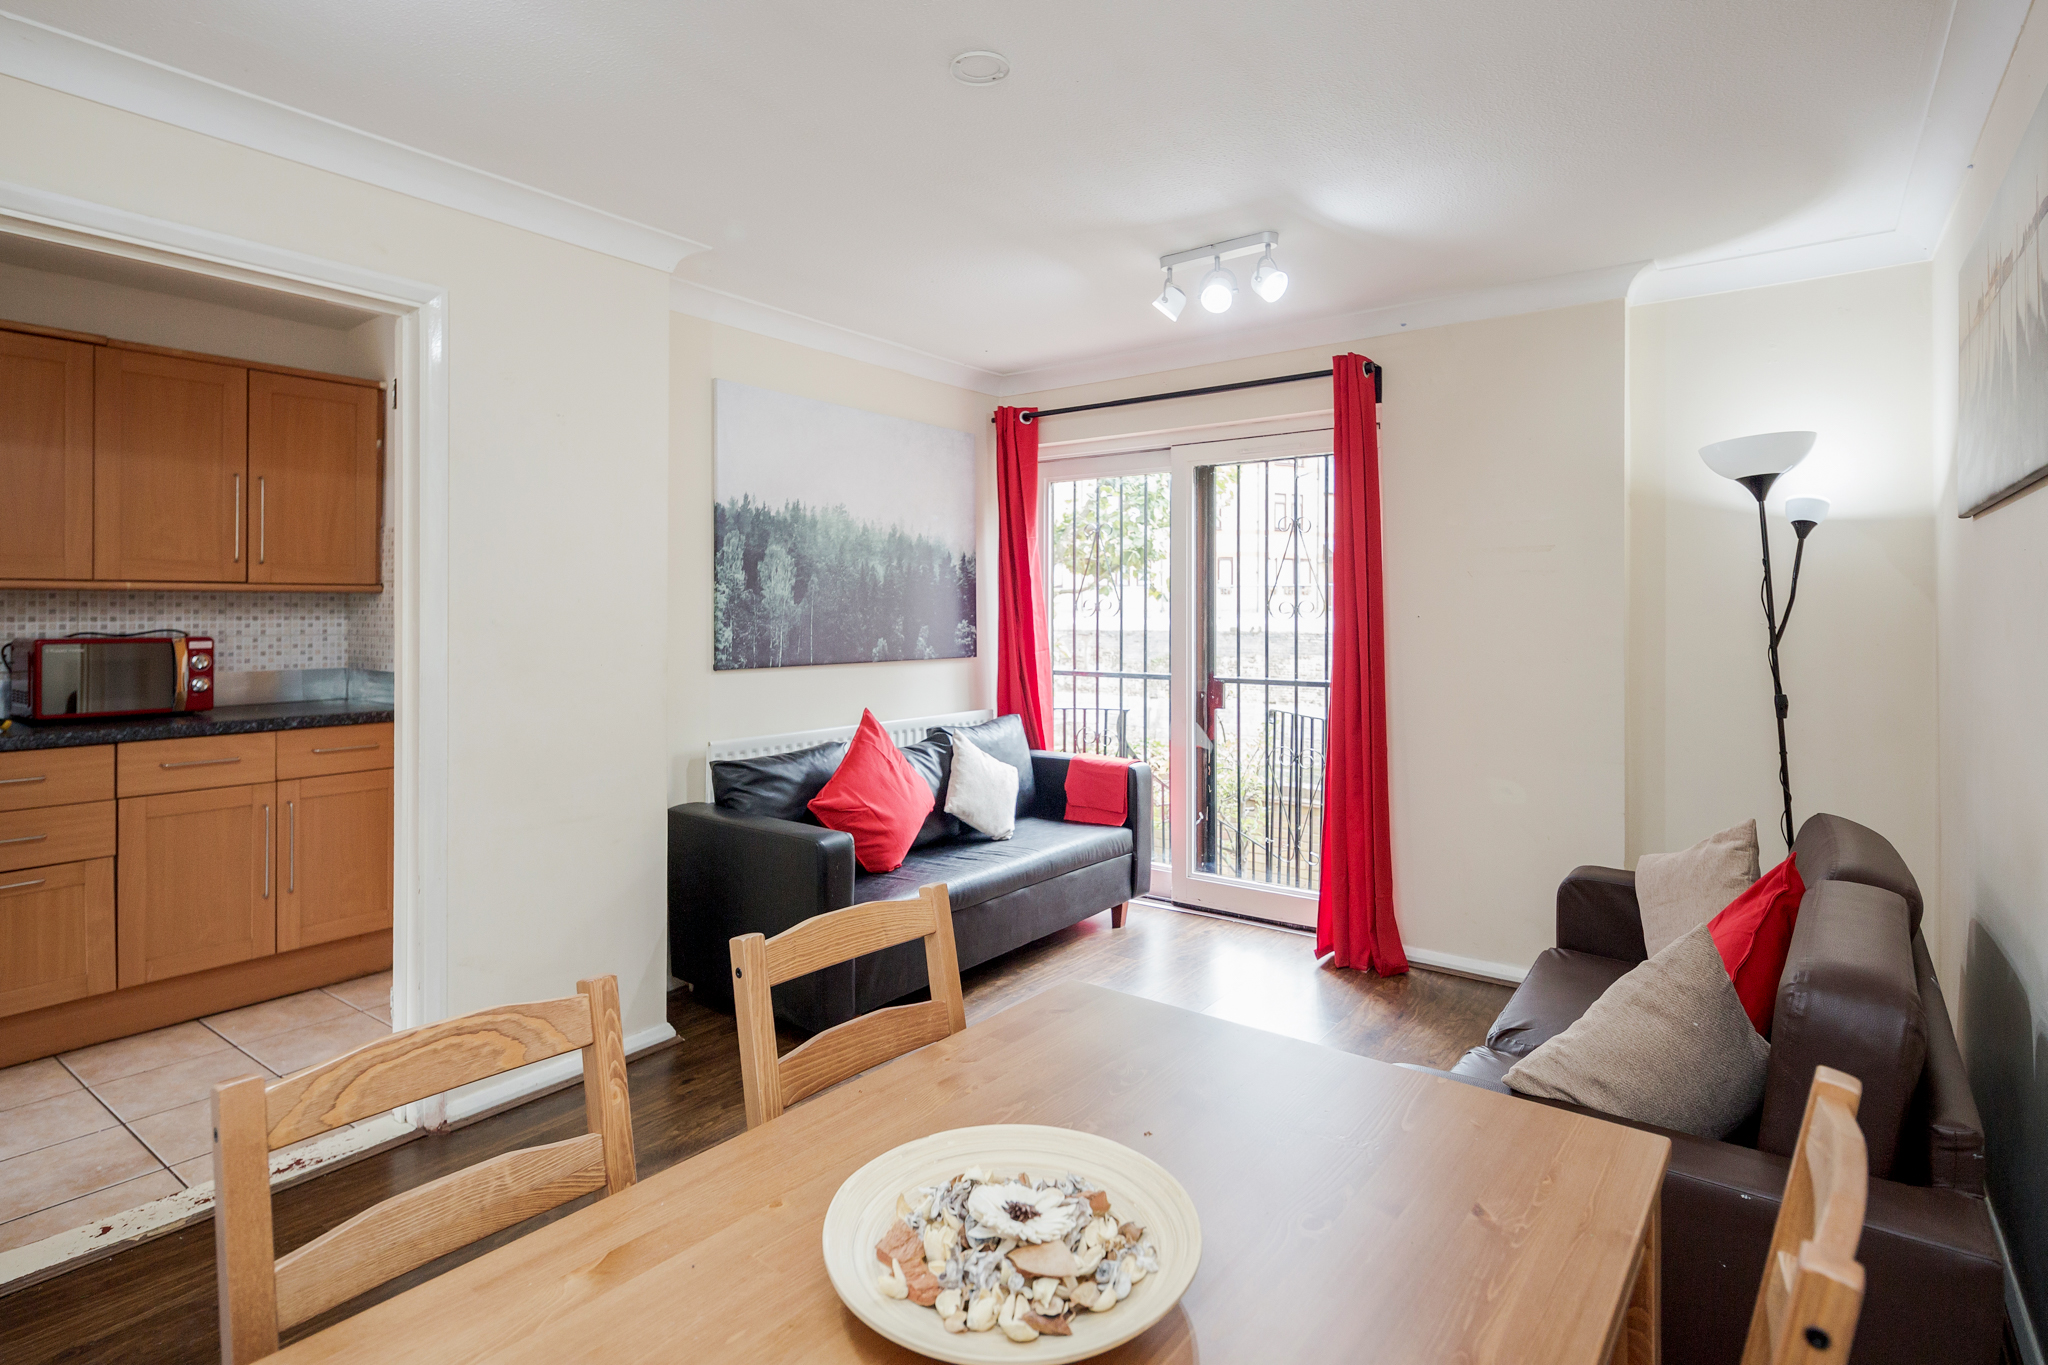 Double room 10 minutes walking from Tower Bridge - (Shared Bathroom) photo 13794094